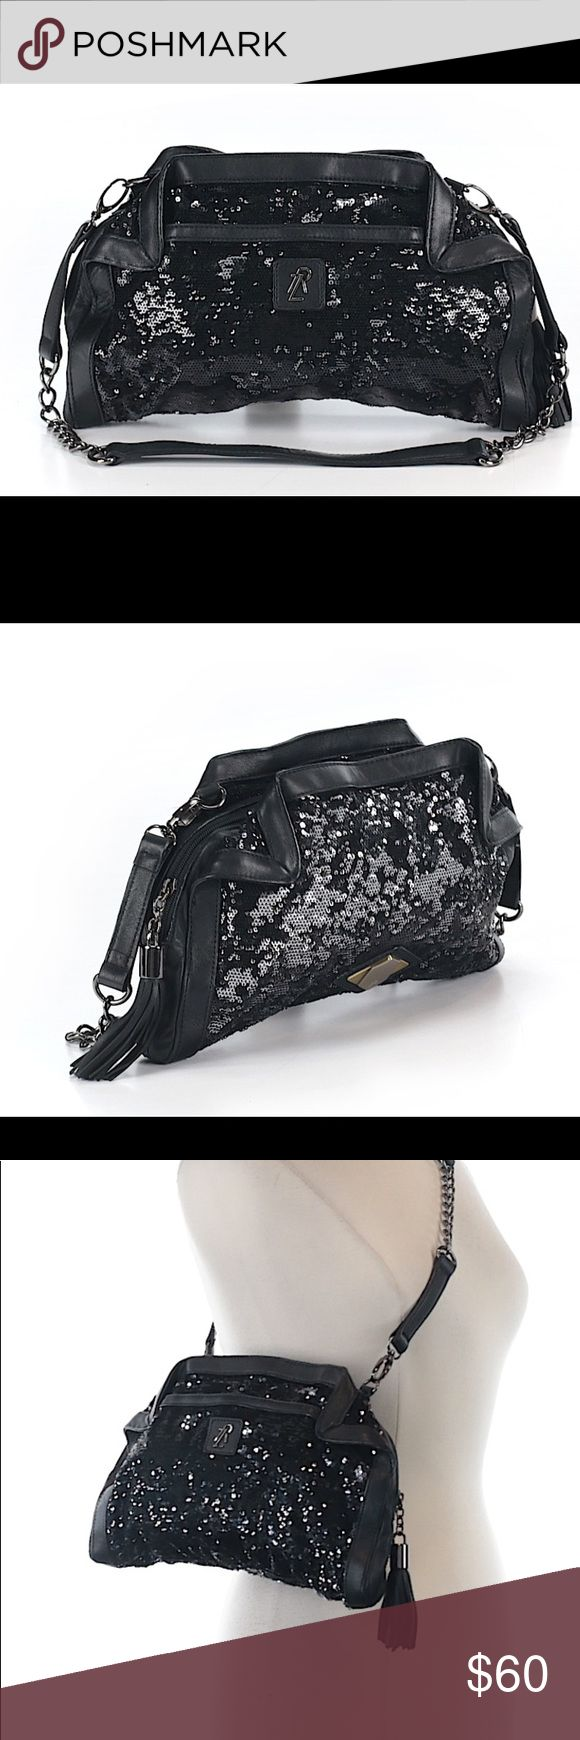 Rachel Zoe black sequin cross body bag This item is like new with very minor signs of wear Rachel Zoe Bags Crossbody Bags